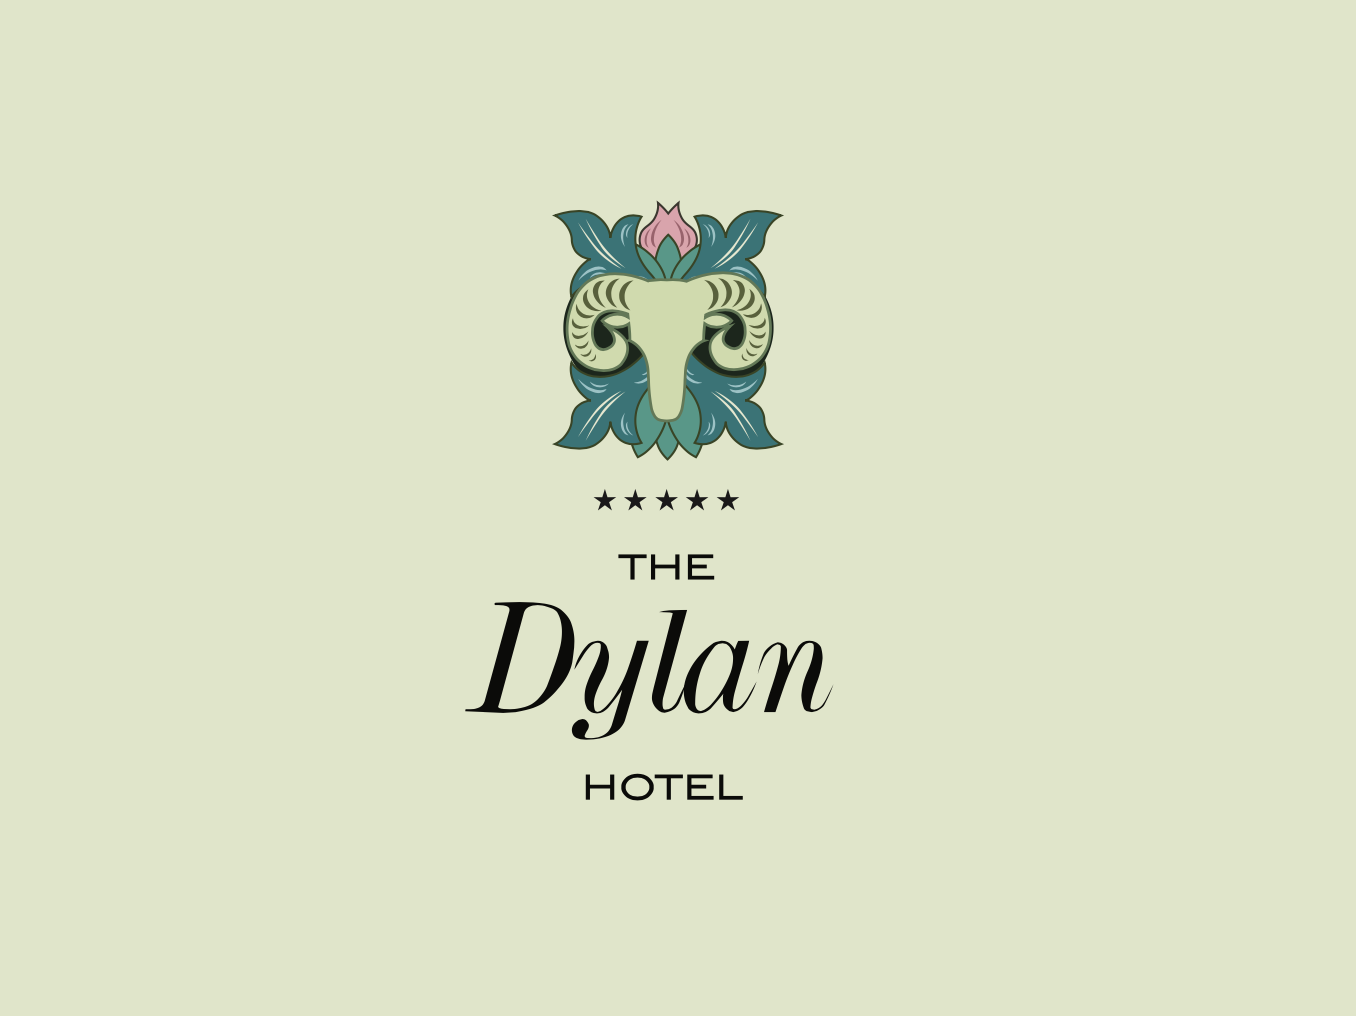 THE DYLAN HOTEL